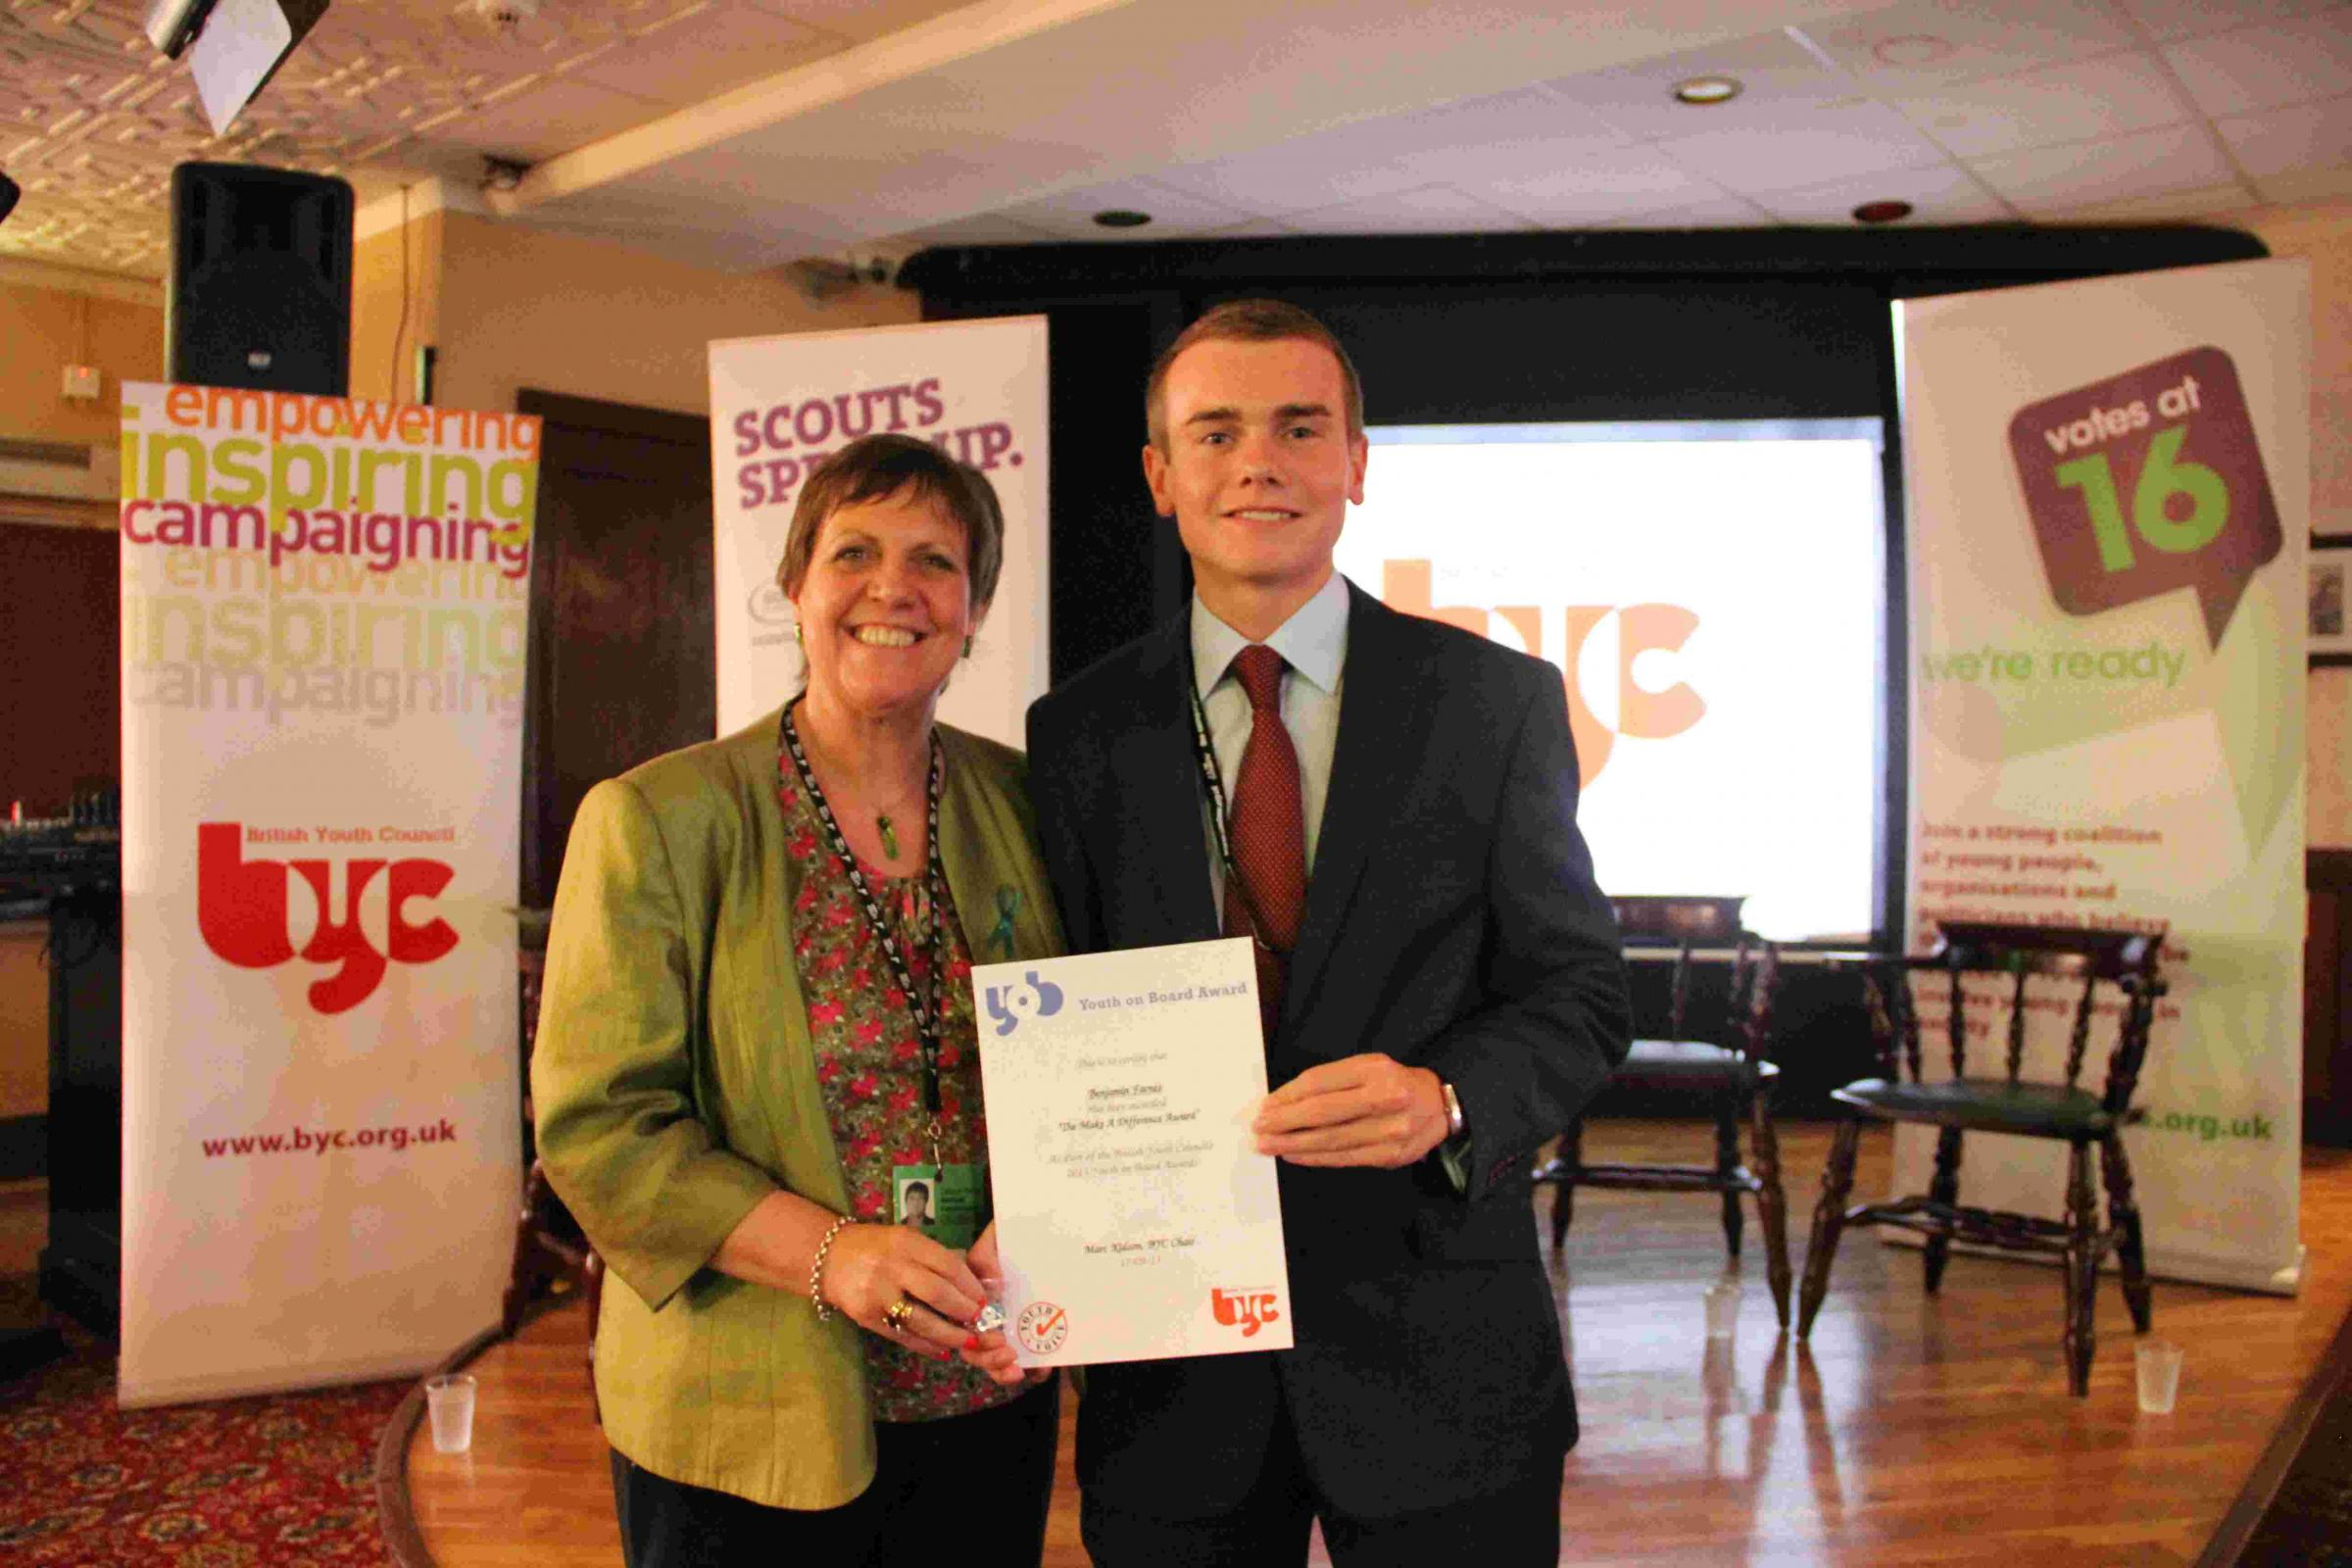 Julia Hilling, MP for Bolton West and trustee for the British Youth Council, with Benjamin Farnes.